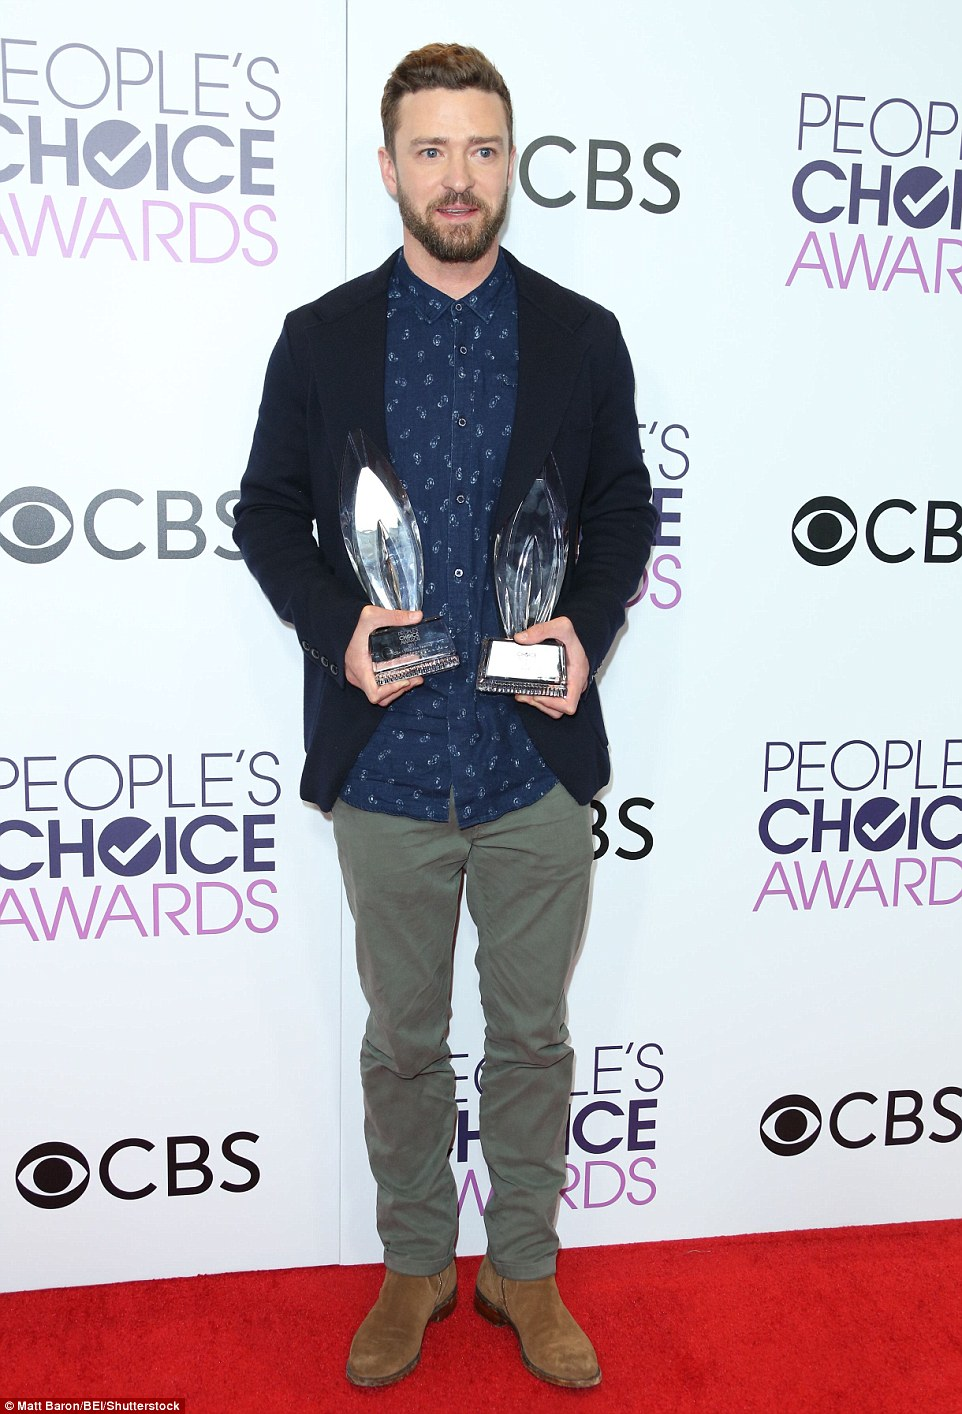 3C42AF2D00000578-4129386-Winning_Justin_Timberlake_posed_on_the_red_carpet_after_nabbing_-a-22_1484868945235